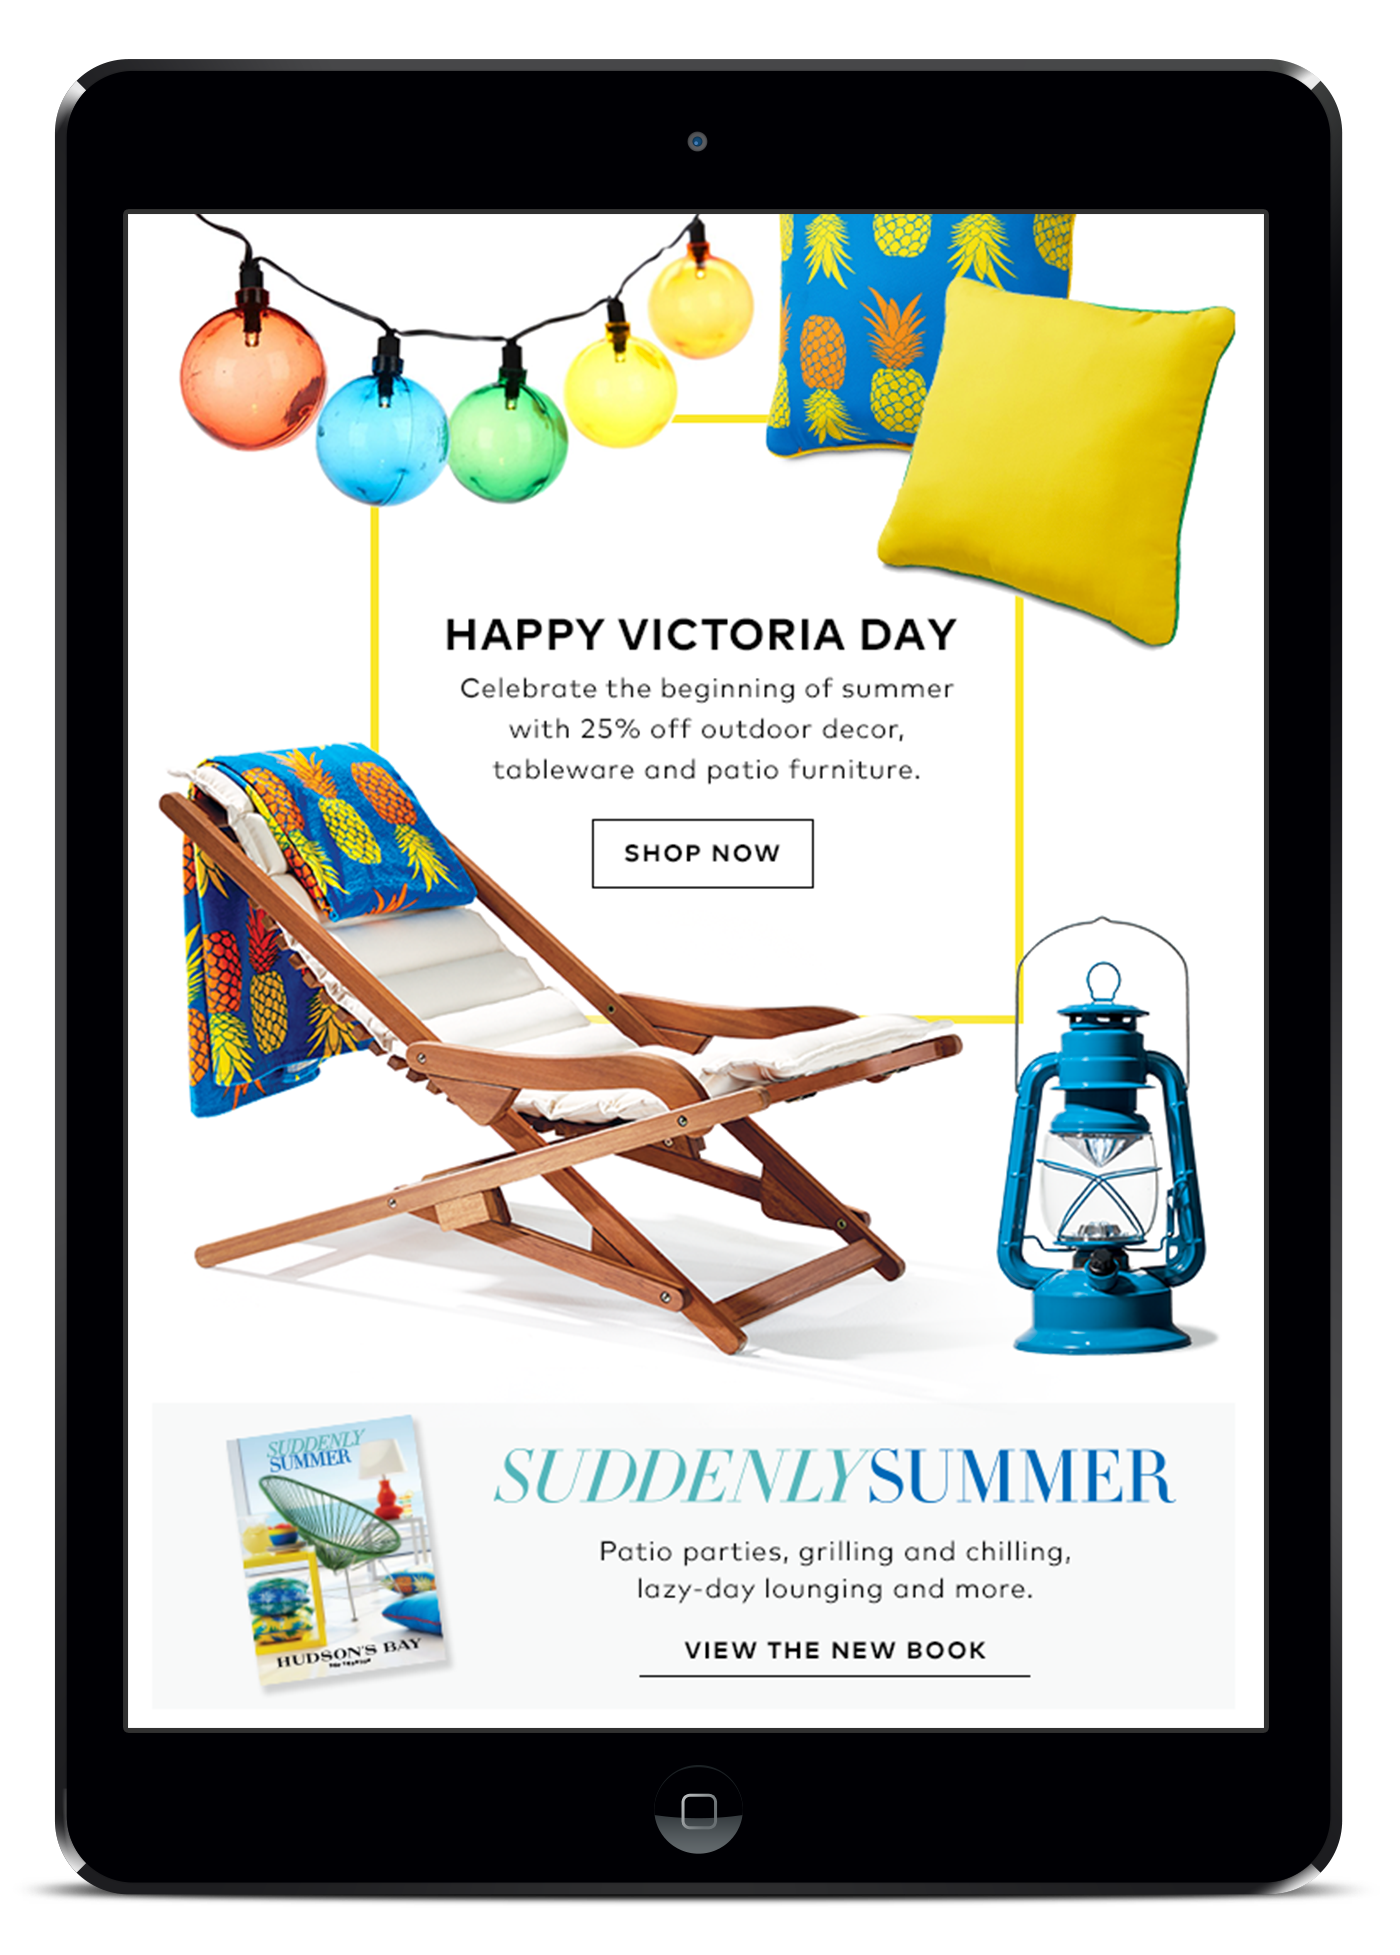 suddentlysummer_emailhome2.png